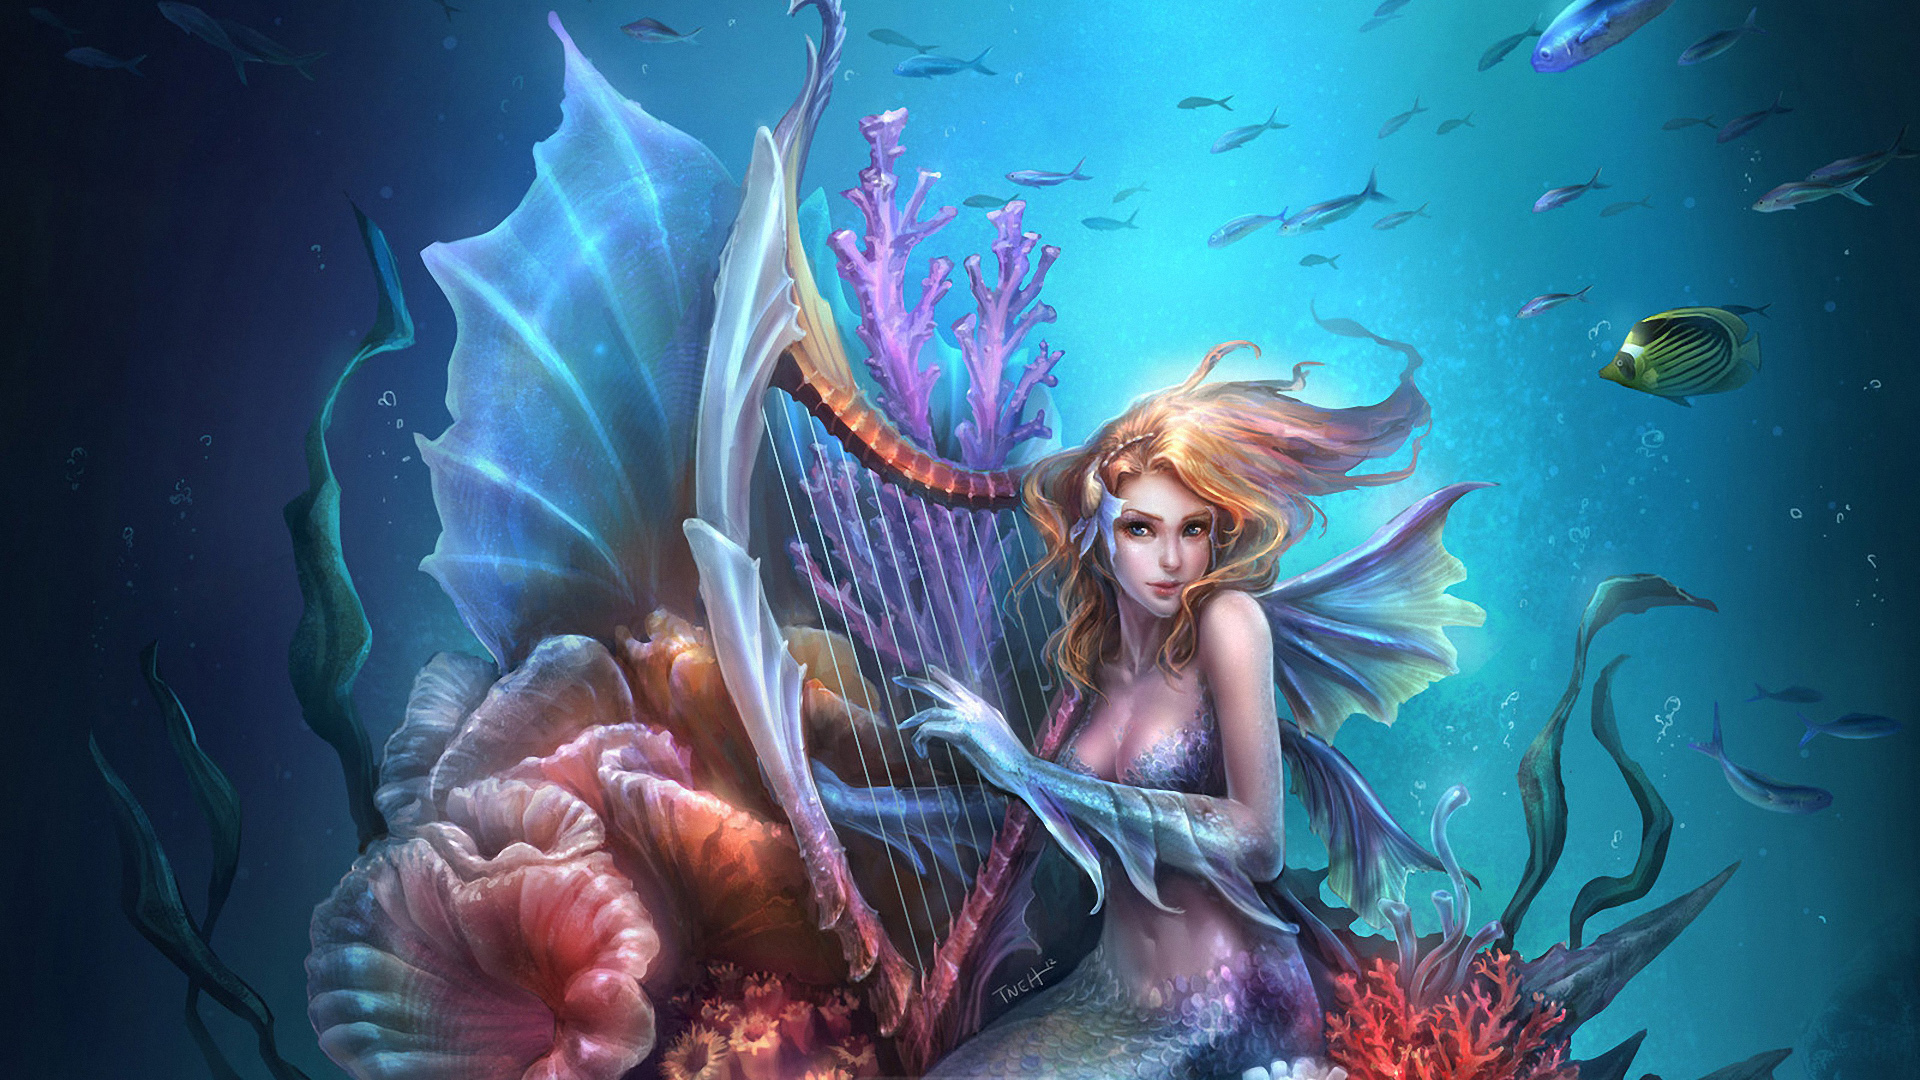 wallpaper beautiful mermaid pictures - photo #27